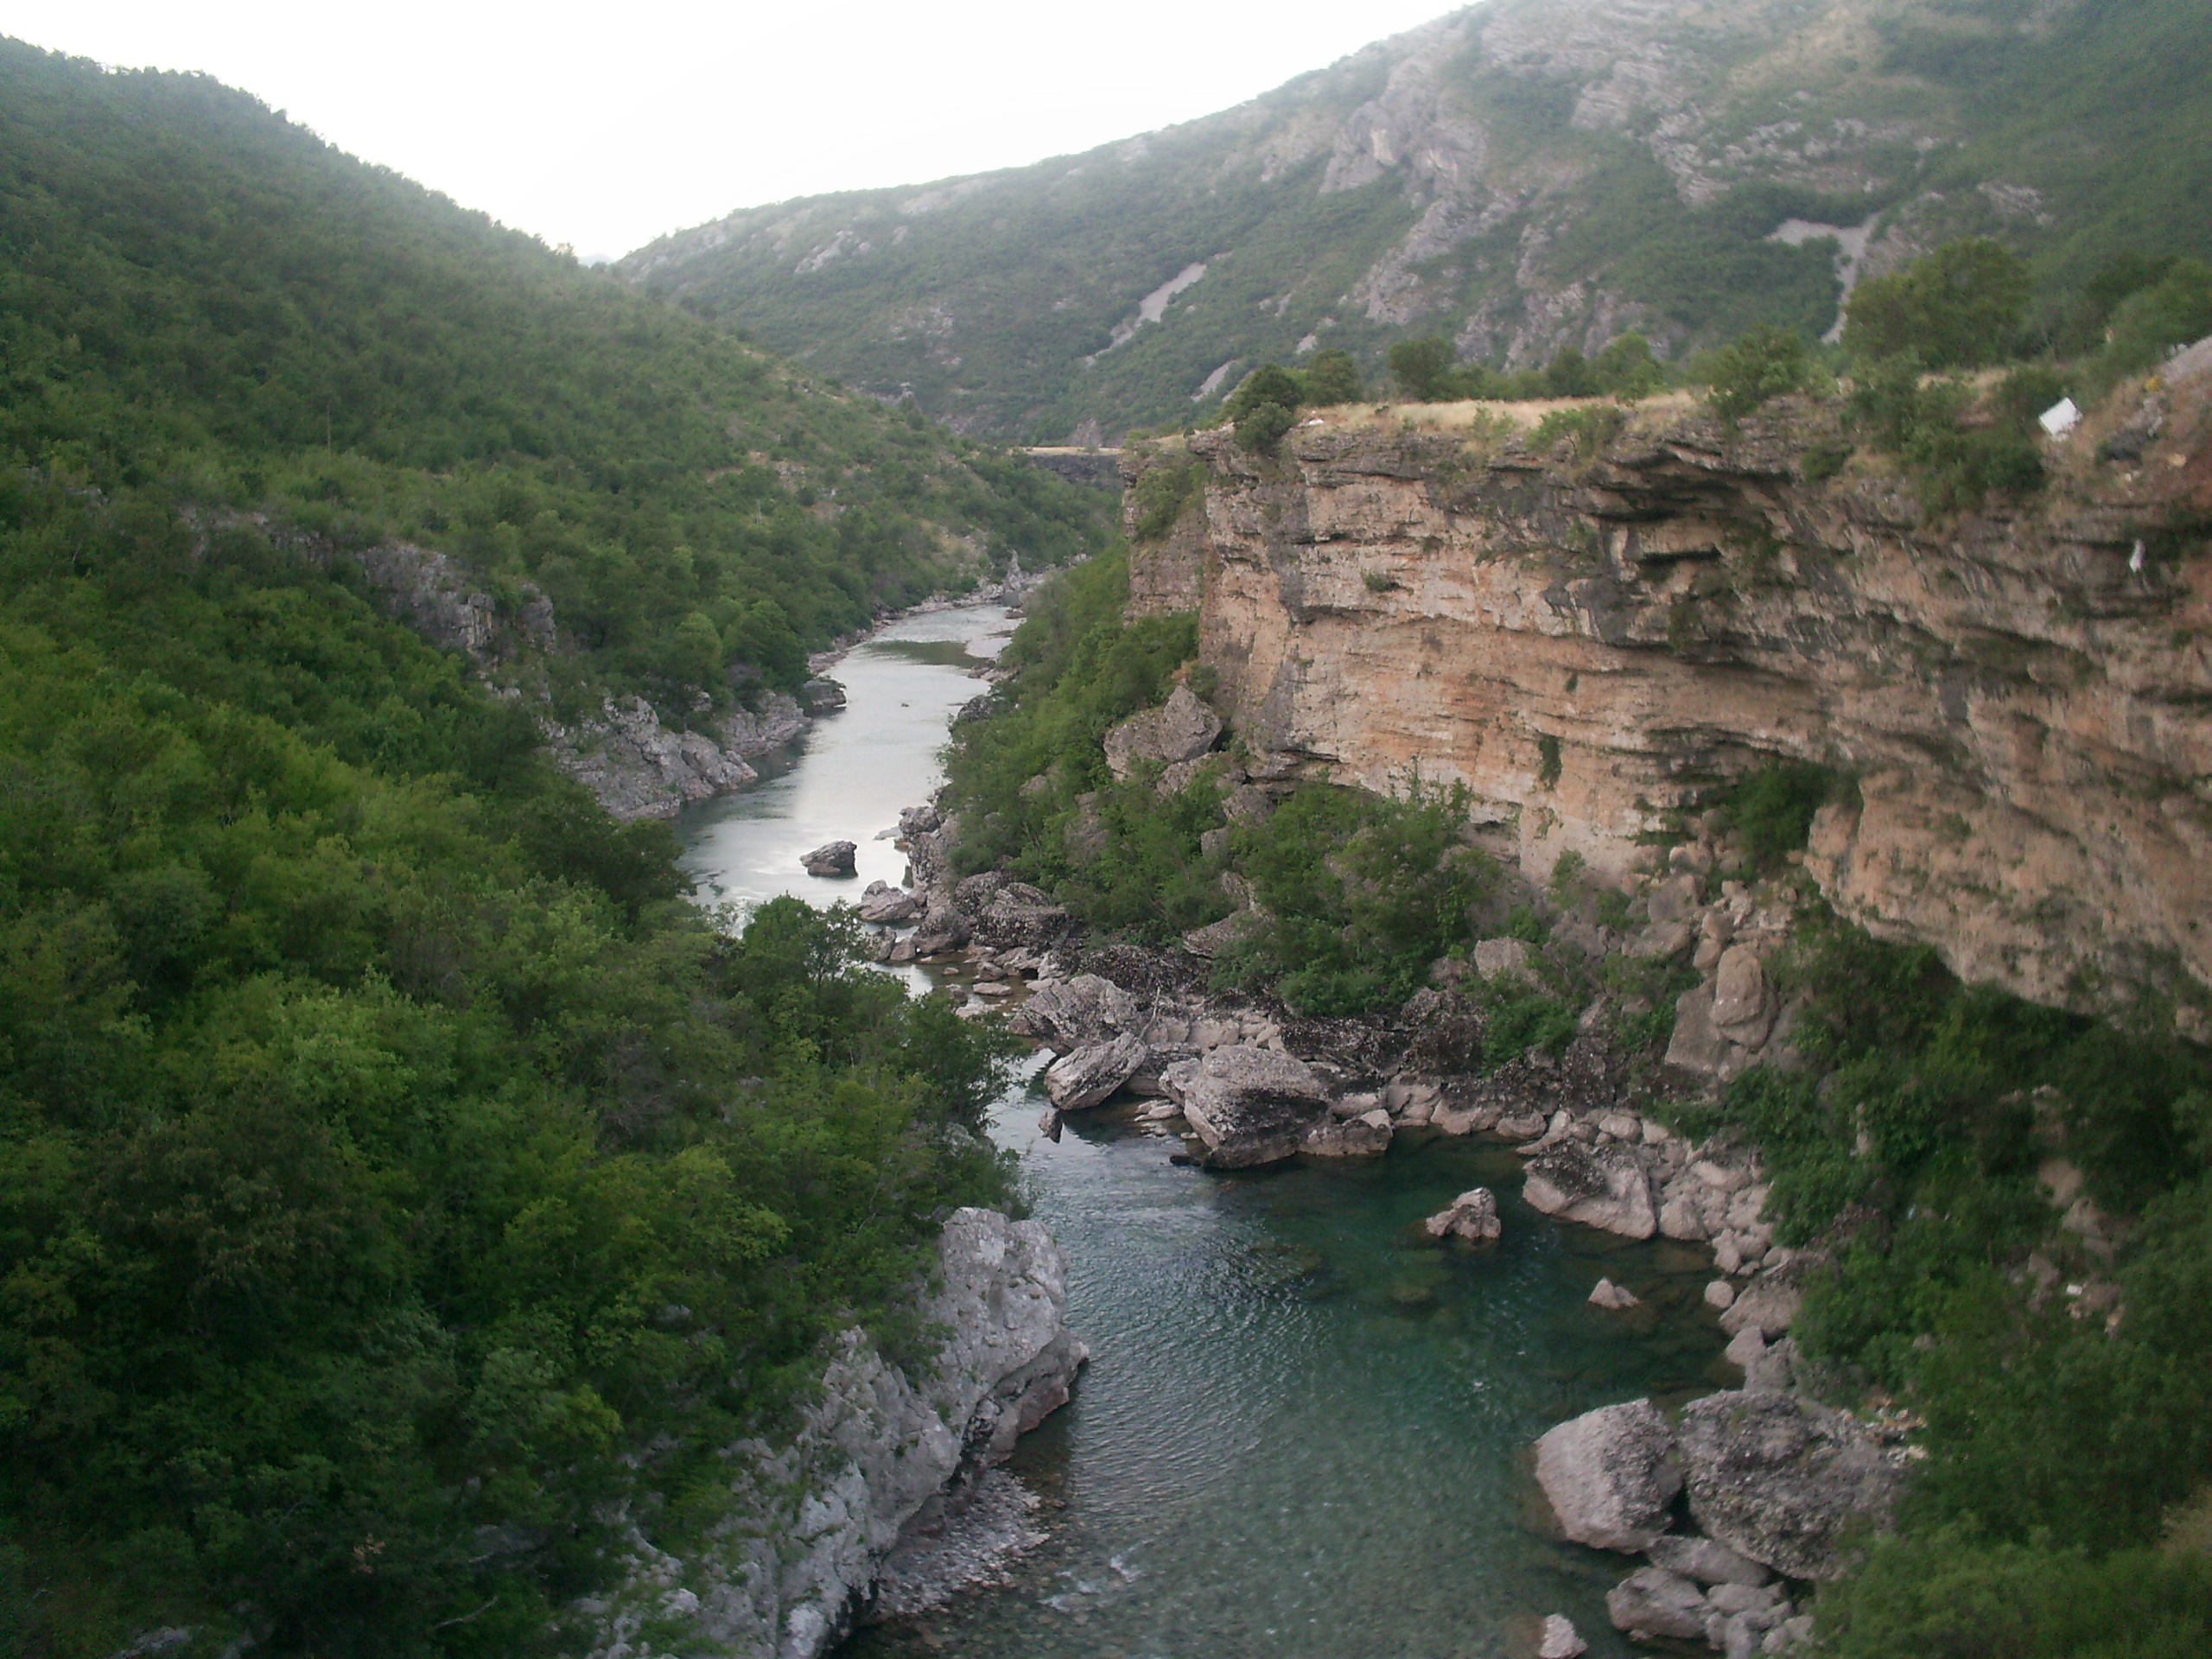 File:Moraca River Canyon.jpg